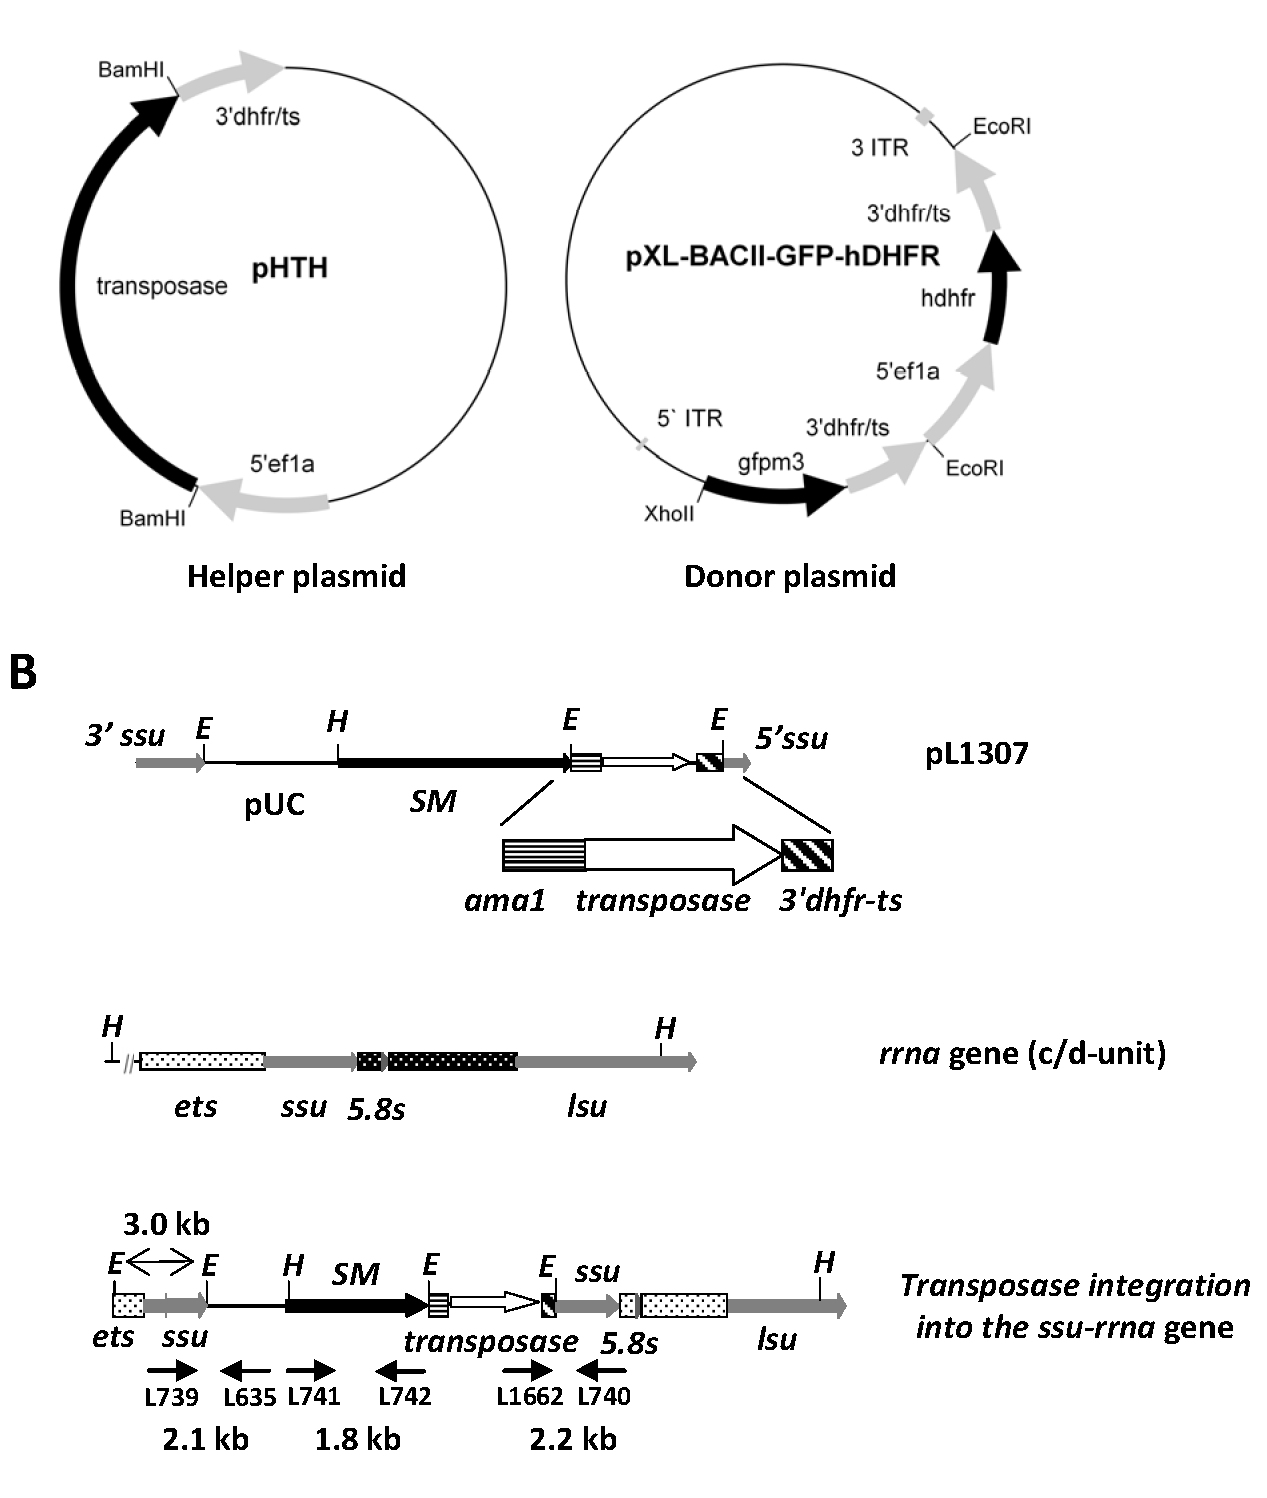 novel peptide rna sequence targeting malaria parasite Involved in pathogenesis in the malaria parasite via novel subnetwork alignments is considered to be a potential antimalarial target due to its essentiality for parasite life cycle [67] a ribosomal subunit export protein for rna transport, and (5.